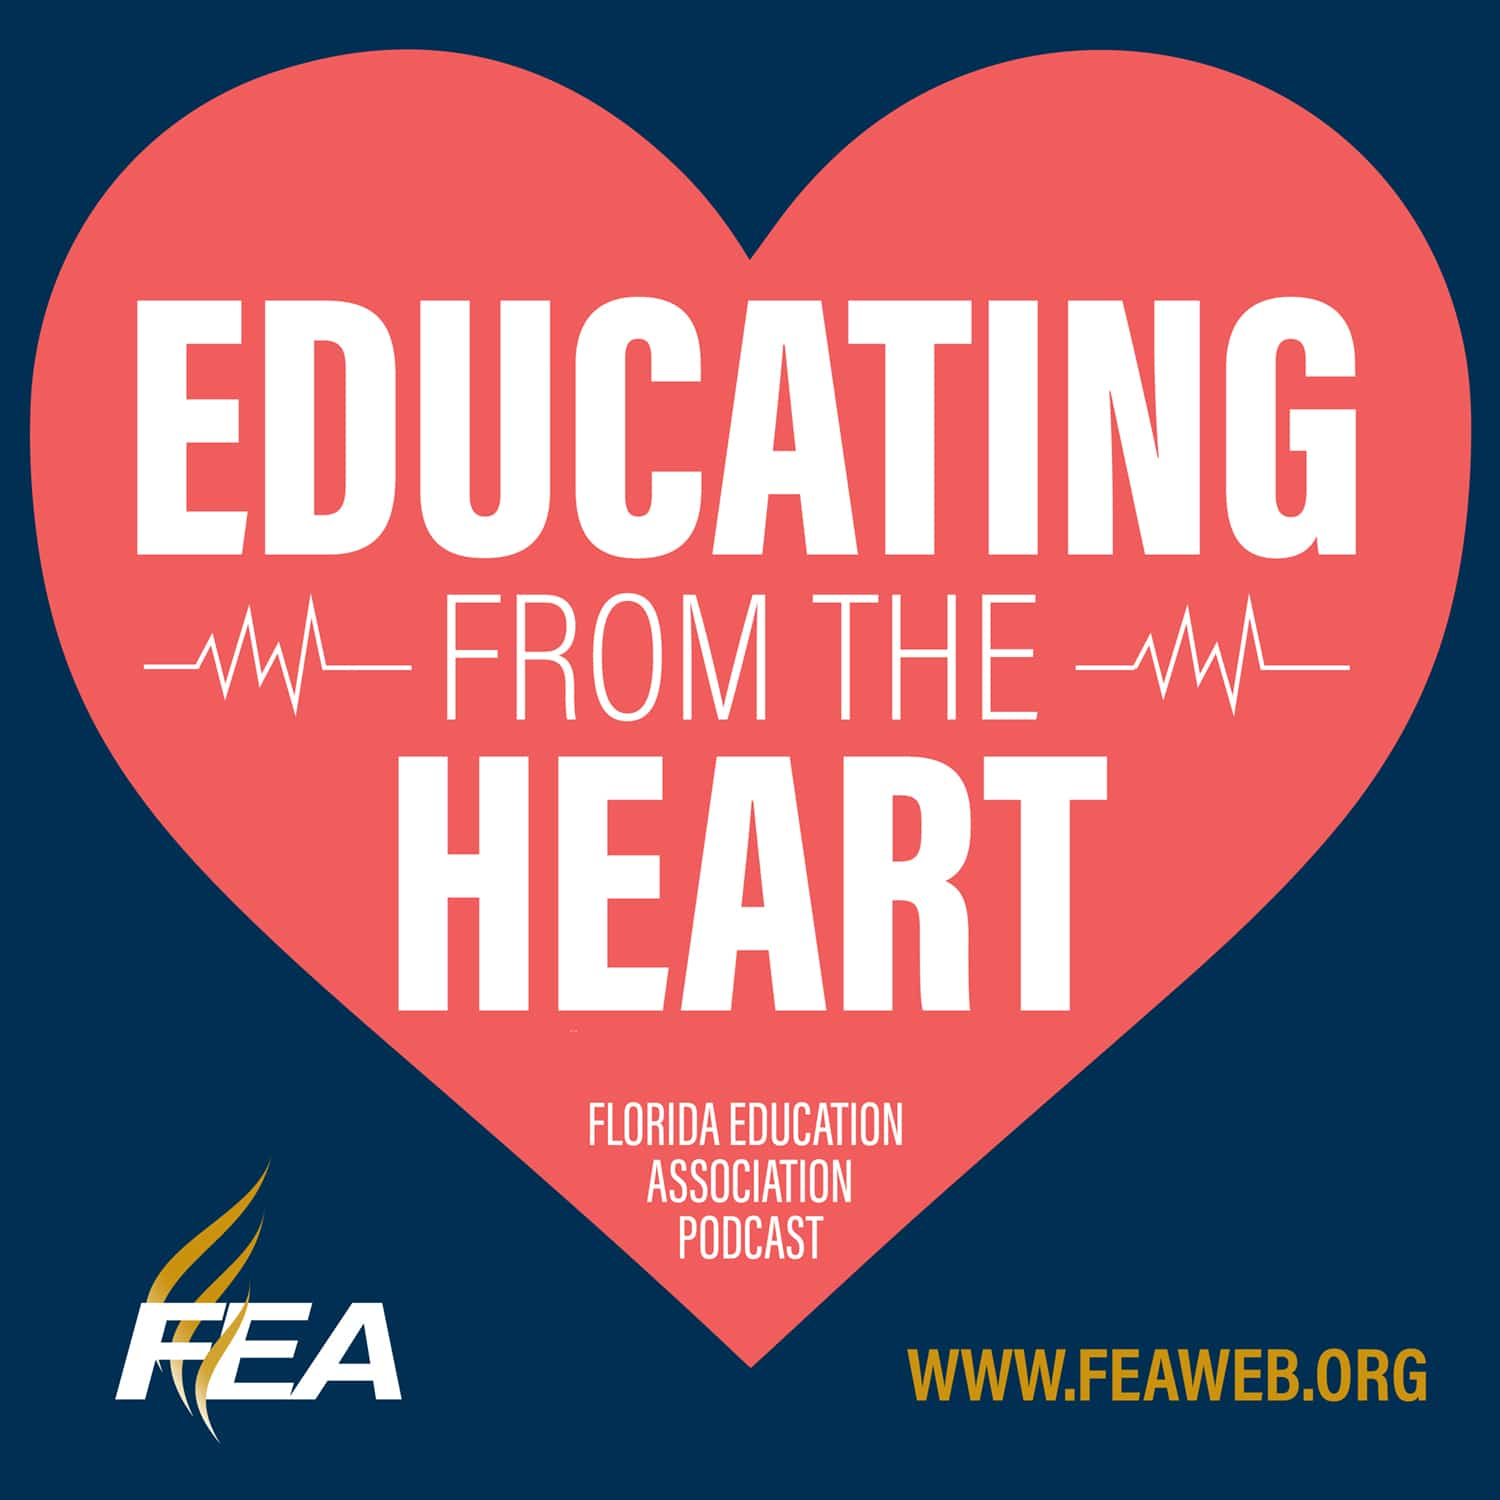 FEA's Educating From the Heart Podcast